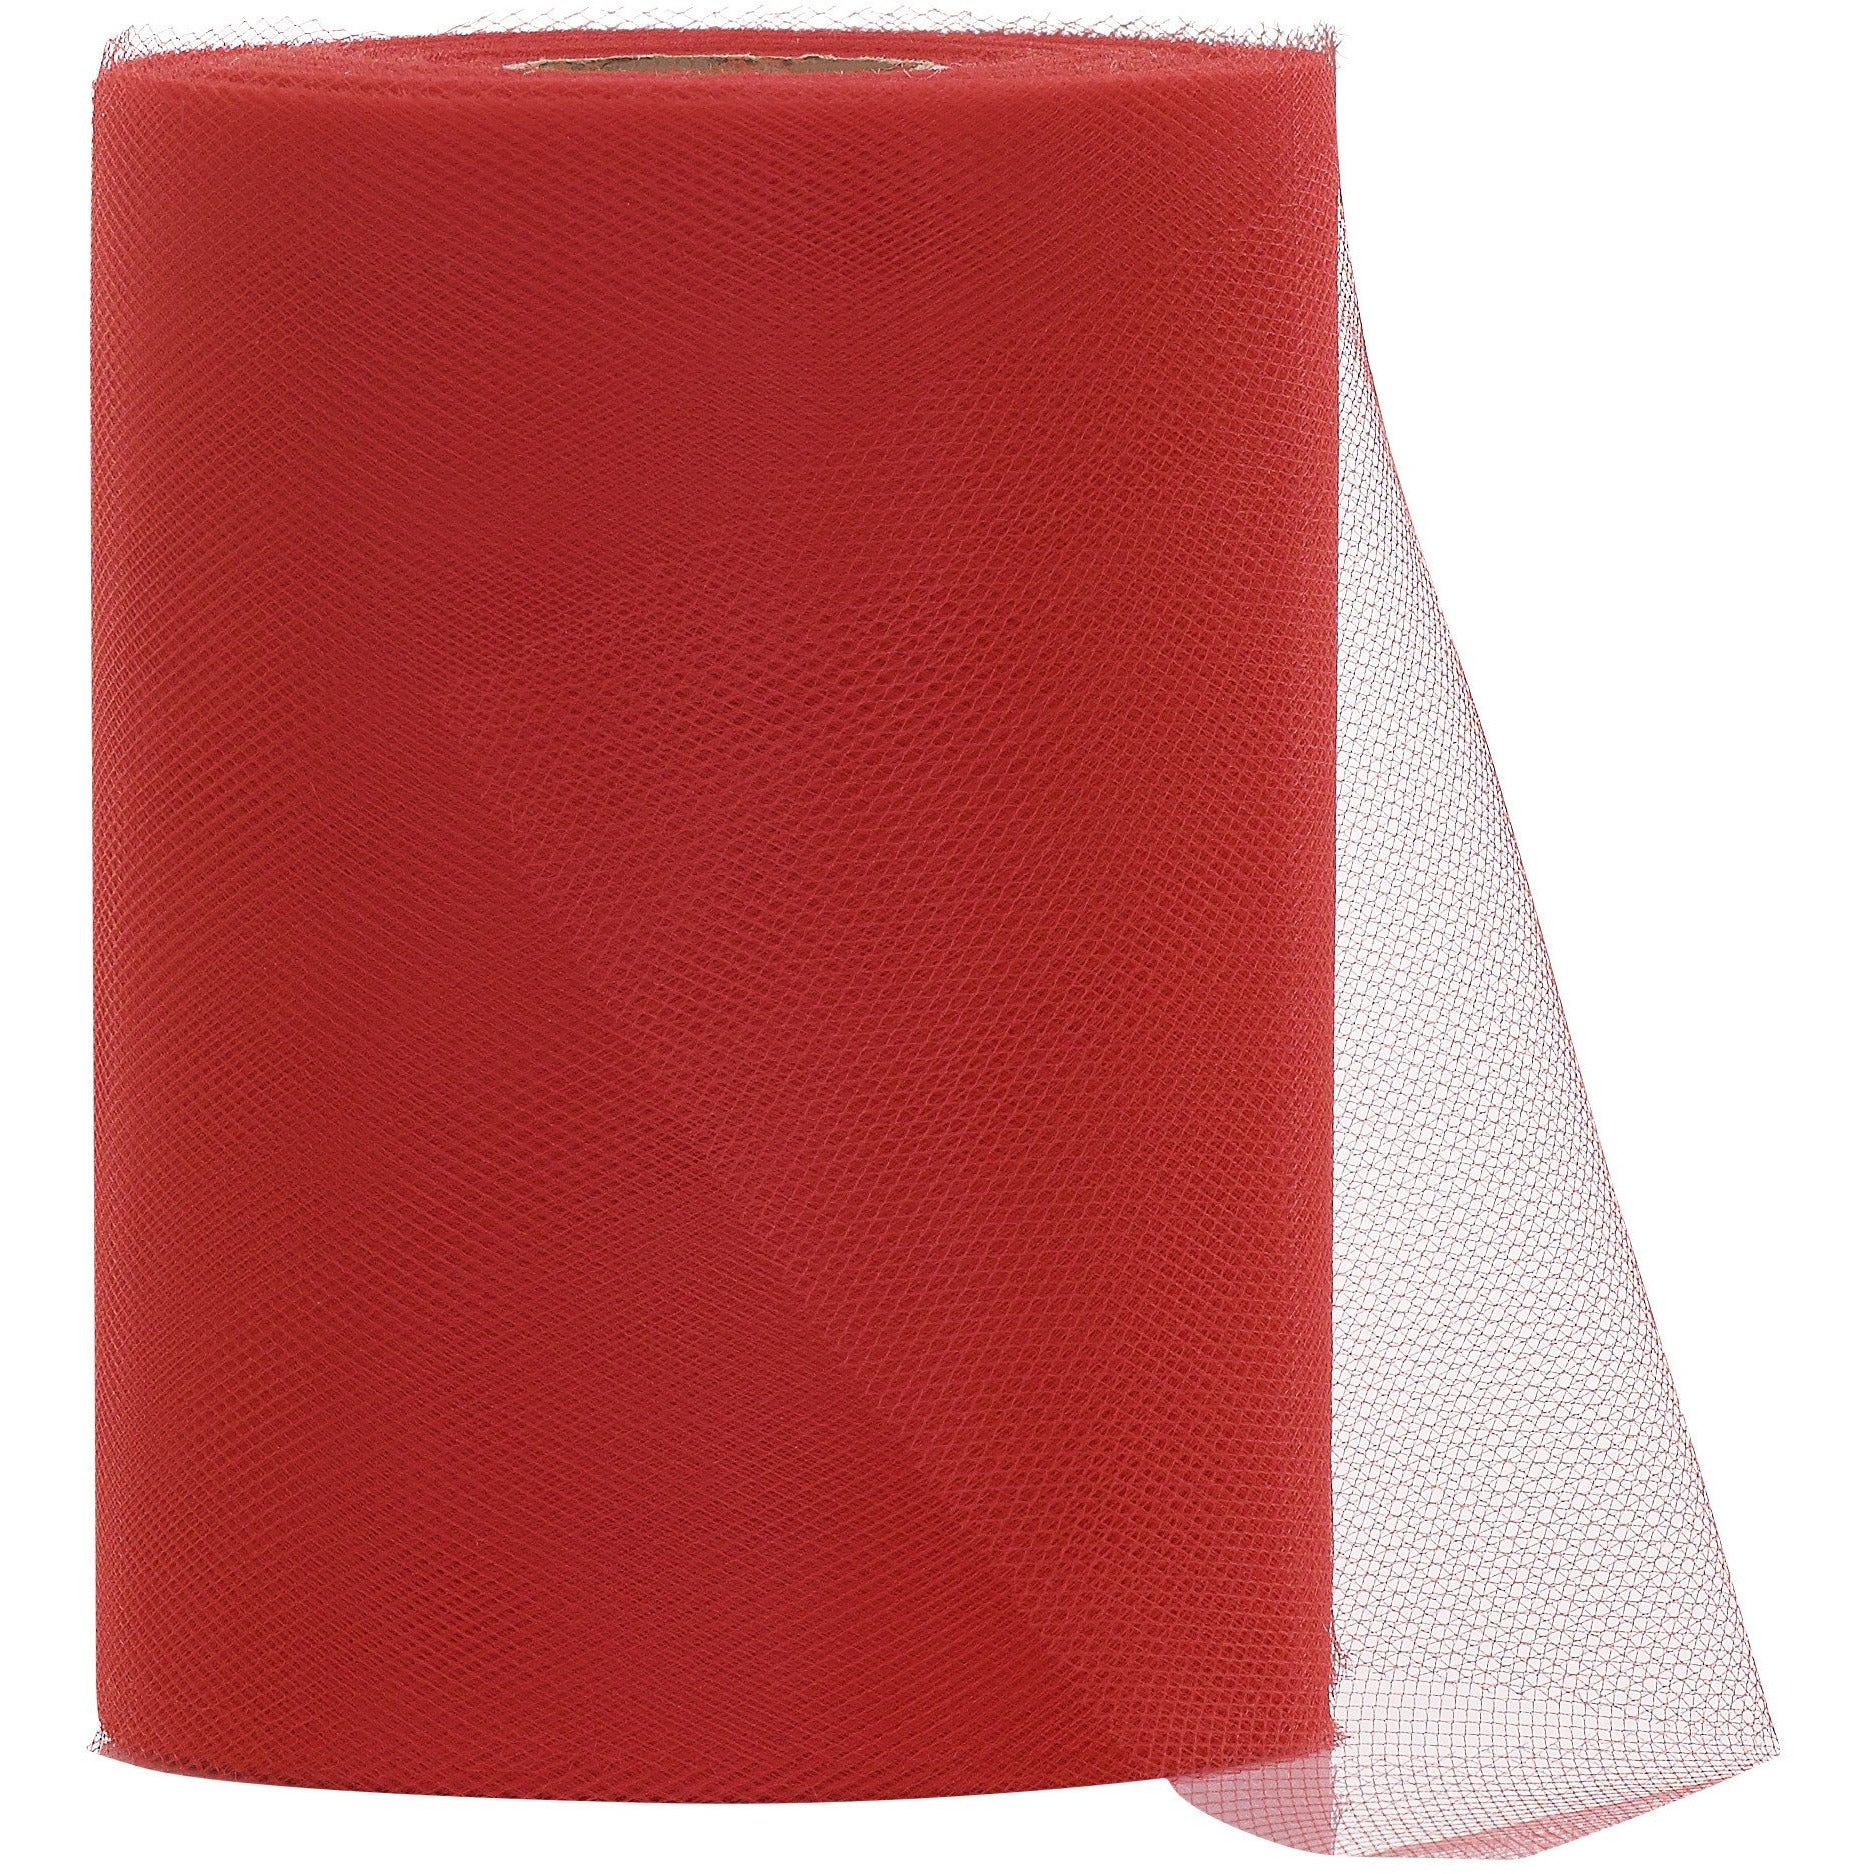 Red Tulle Fabric Roll - 100 Yards